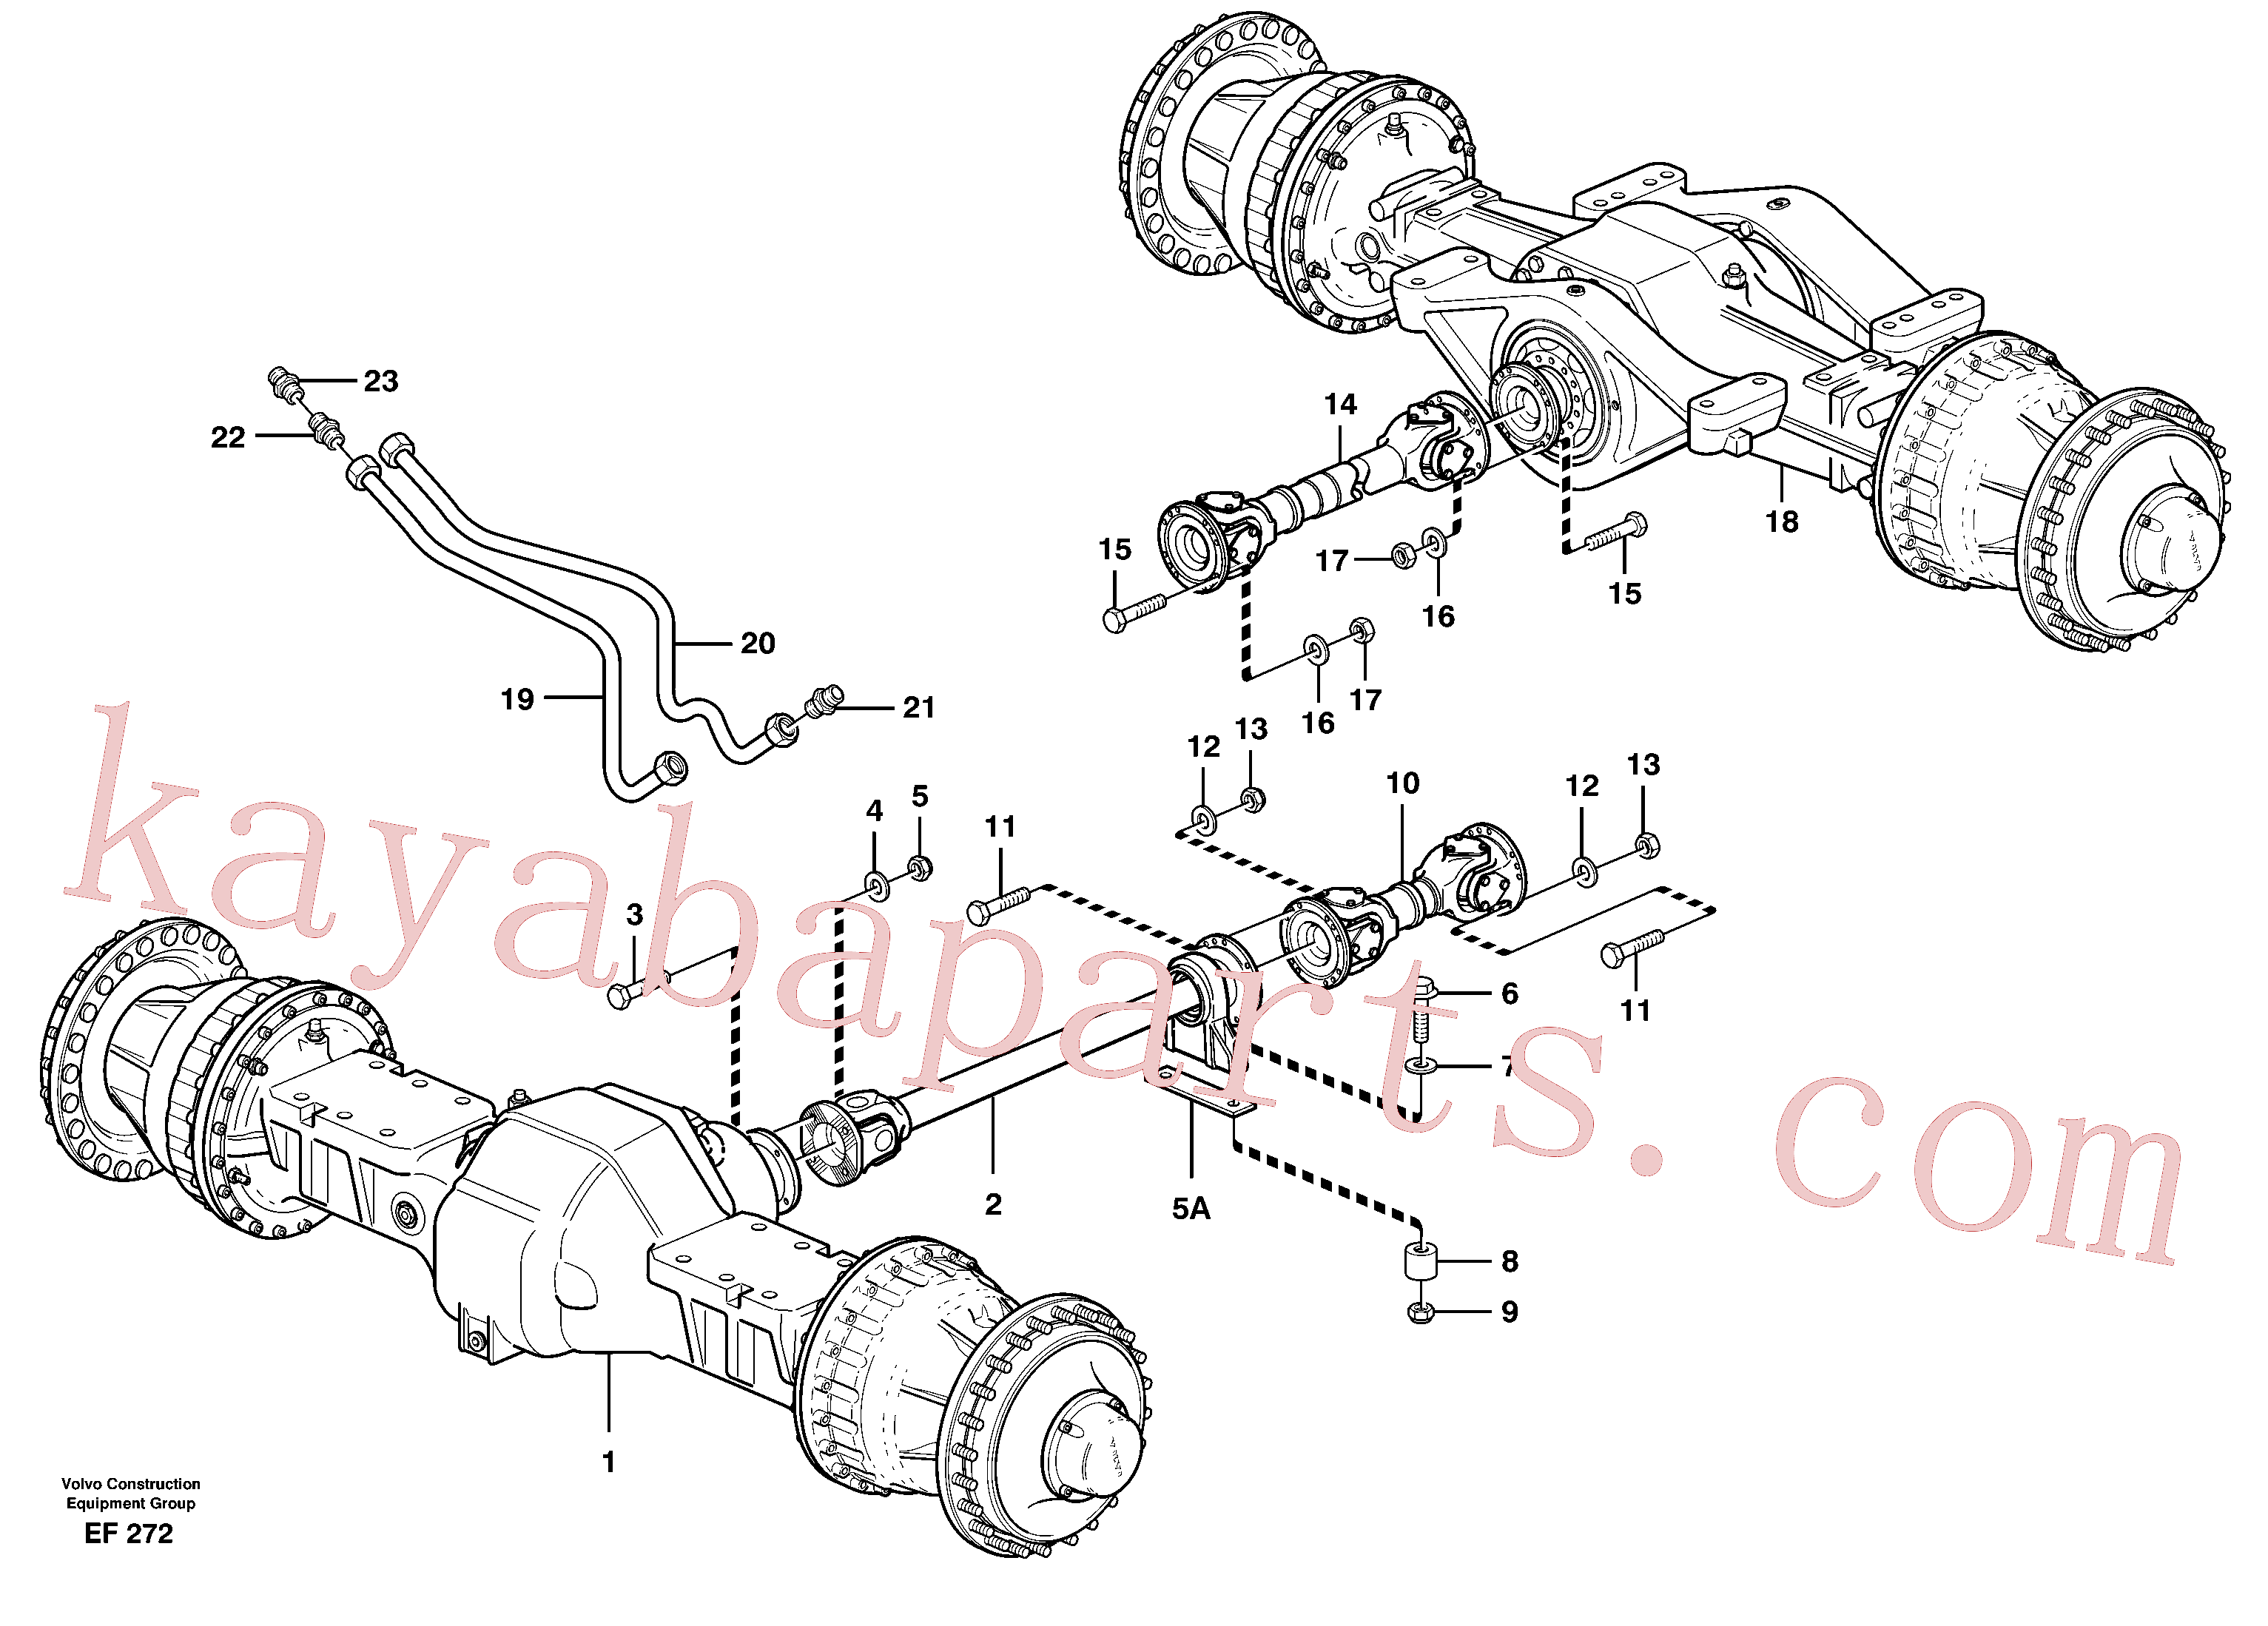 VOE11026356 for Volvo Propeller shafts with fitting parts(EF272 assembly)